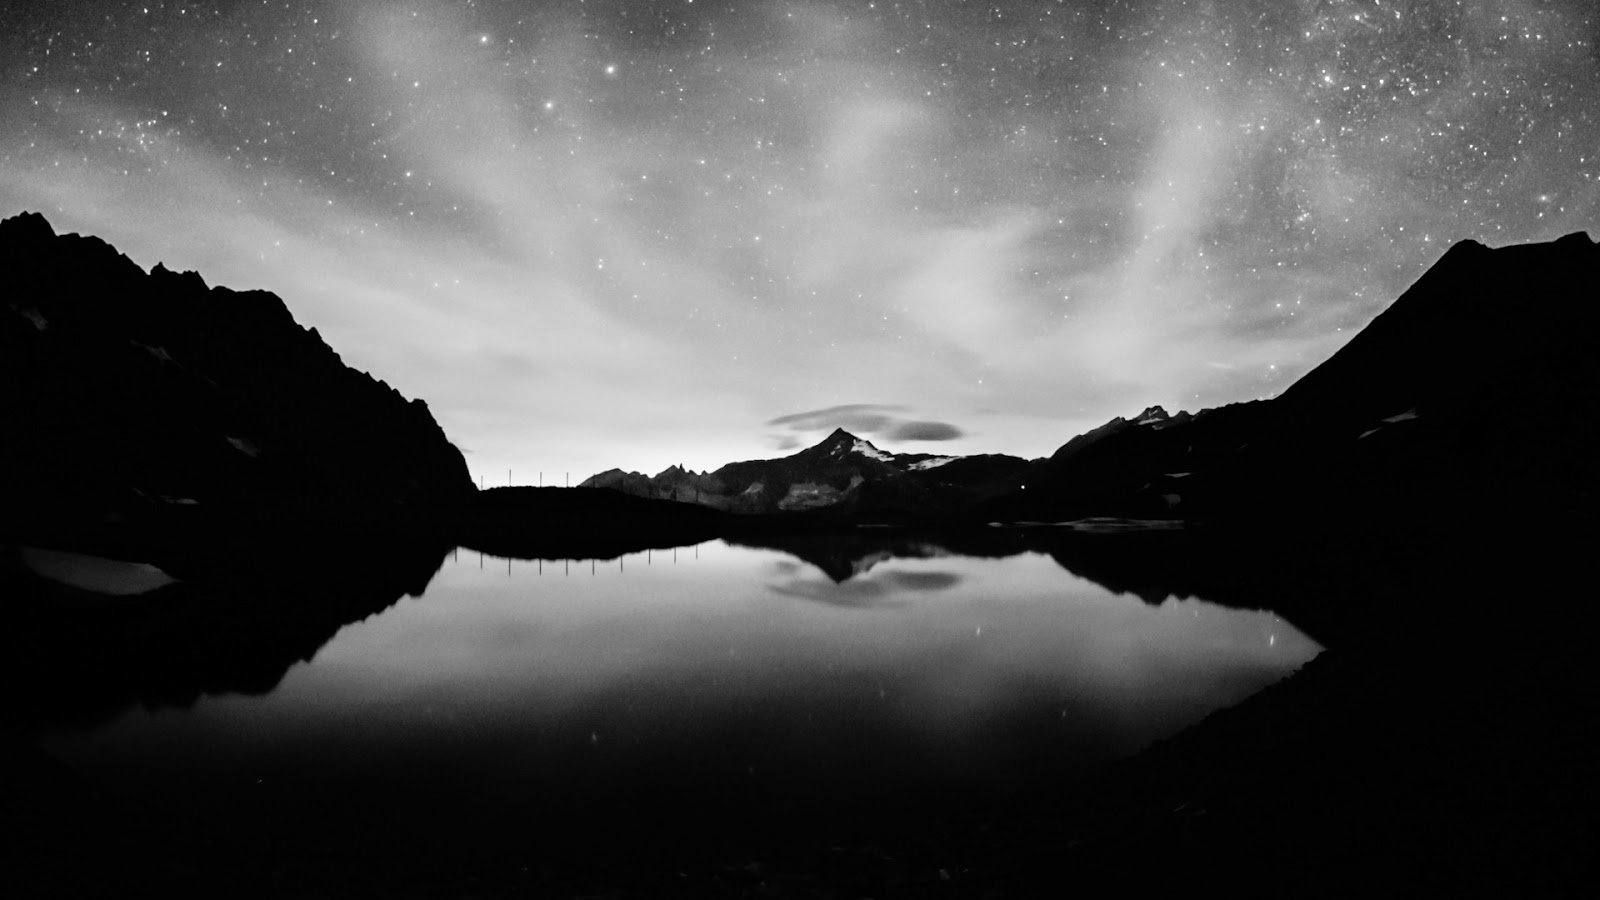 Desktop Wallpapers Black and White - WallpaperSafari